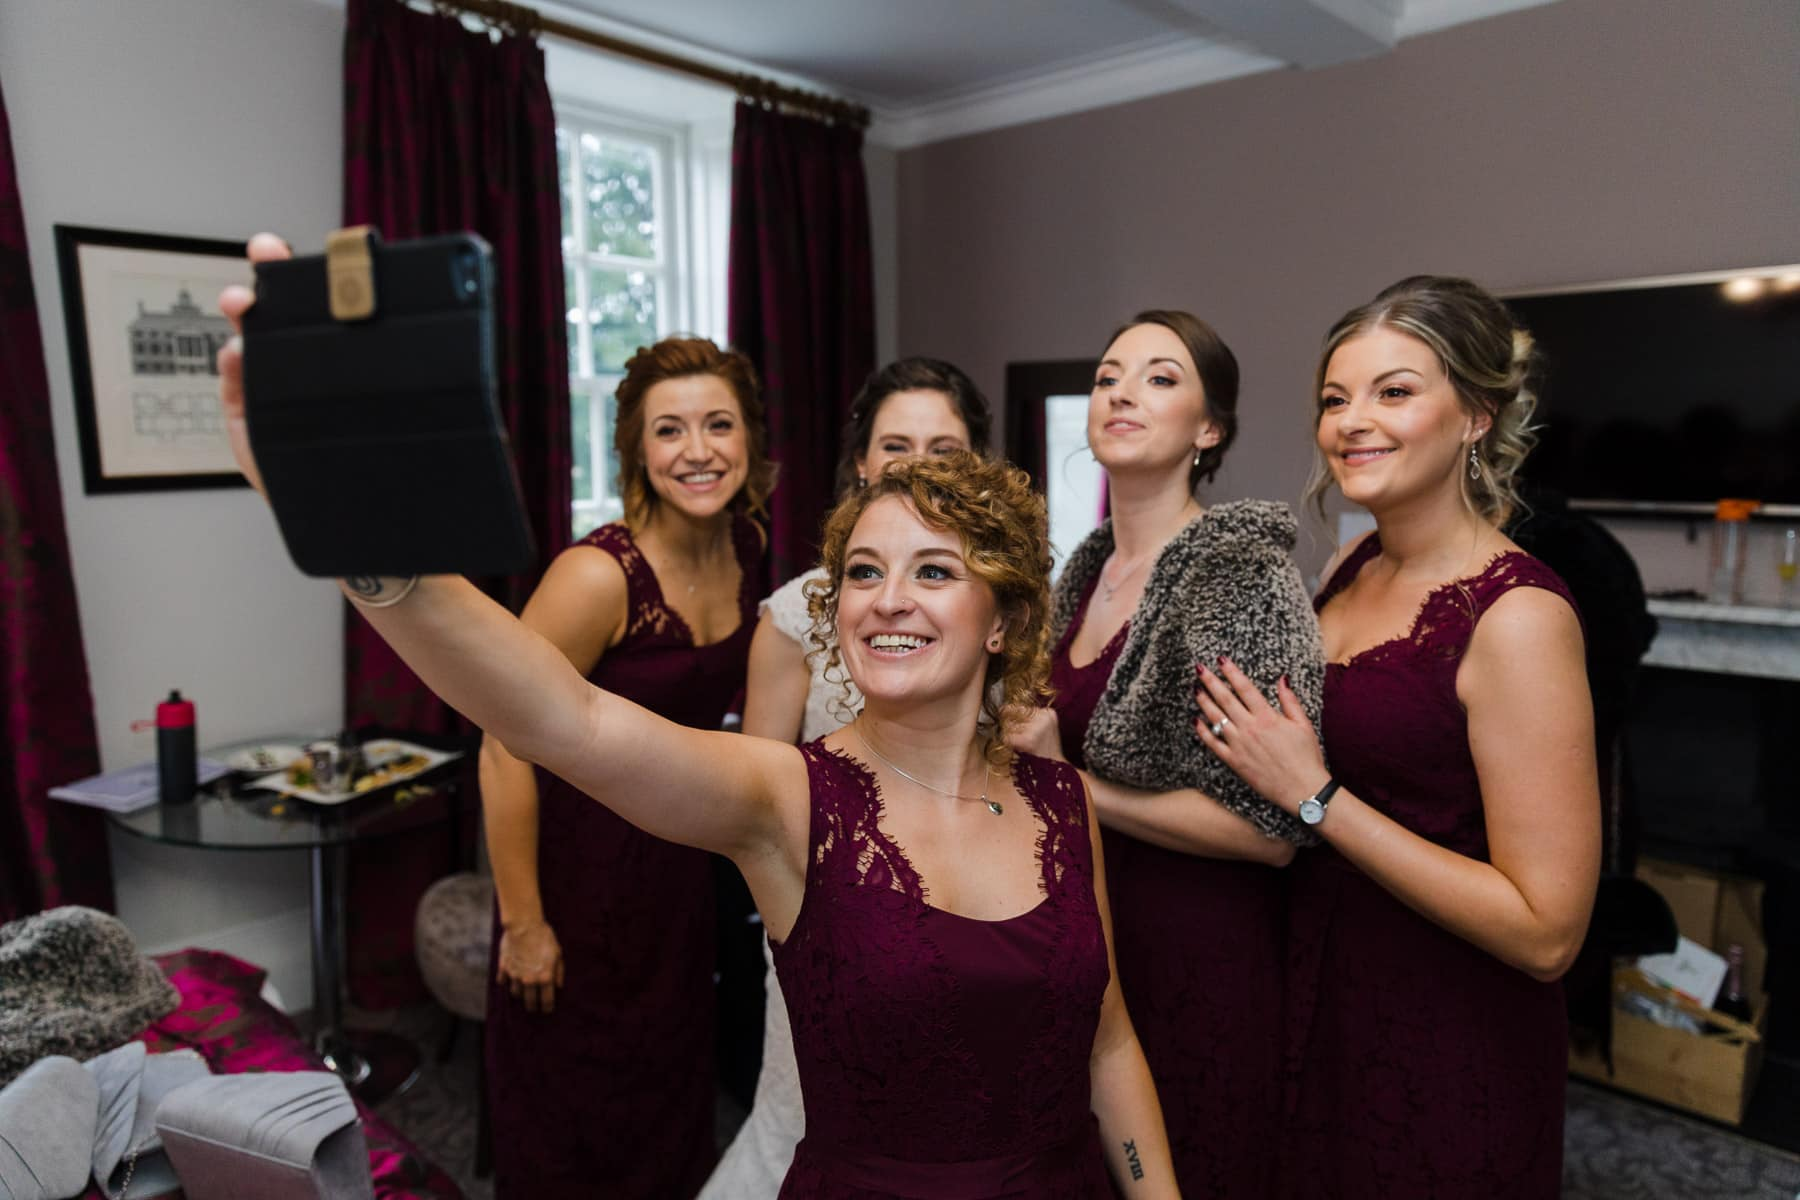 Bridesmaids selfie at Barton hall bridal room